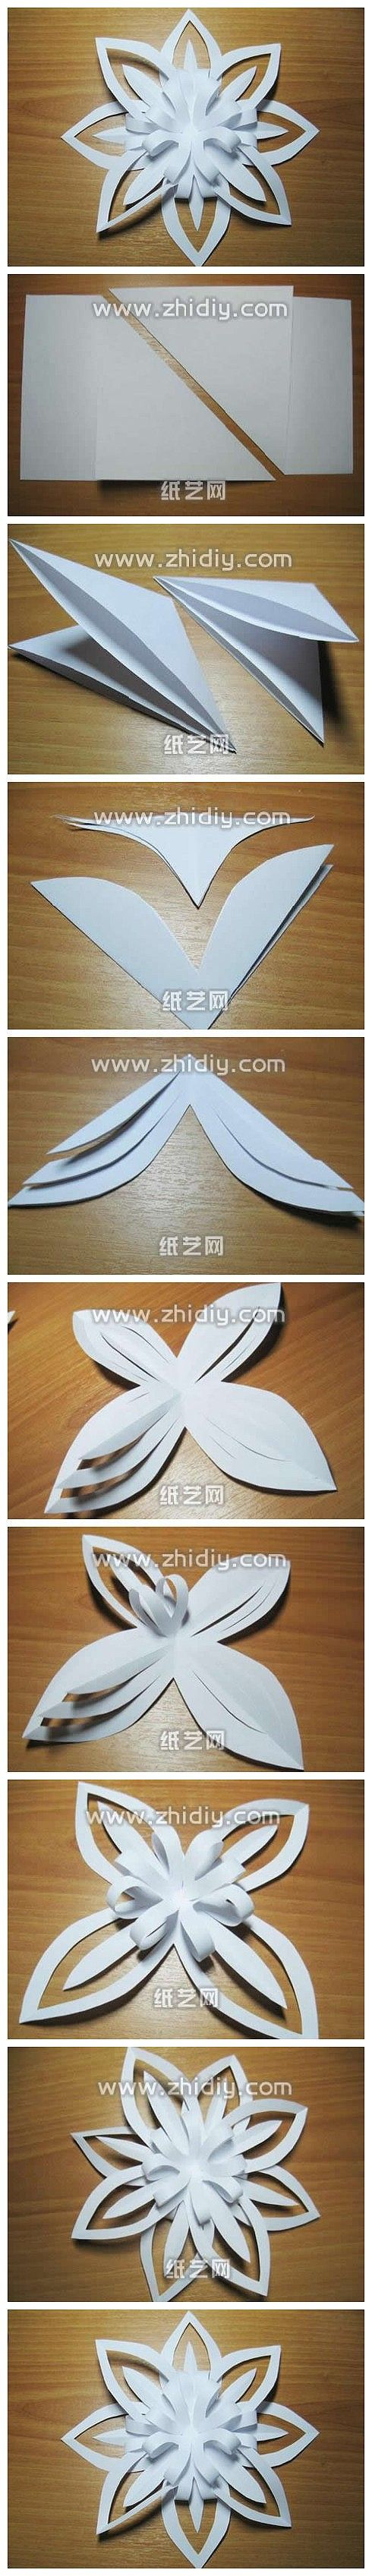 Beautiful paper art of origami fabric handmade DIY tutorial derivative paper snowflake tutorial